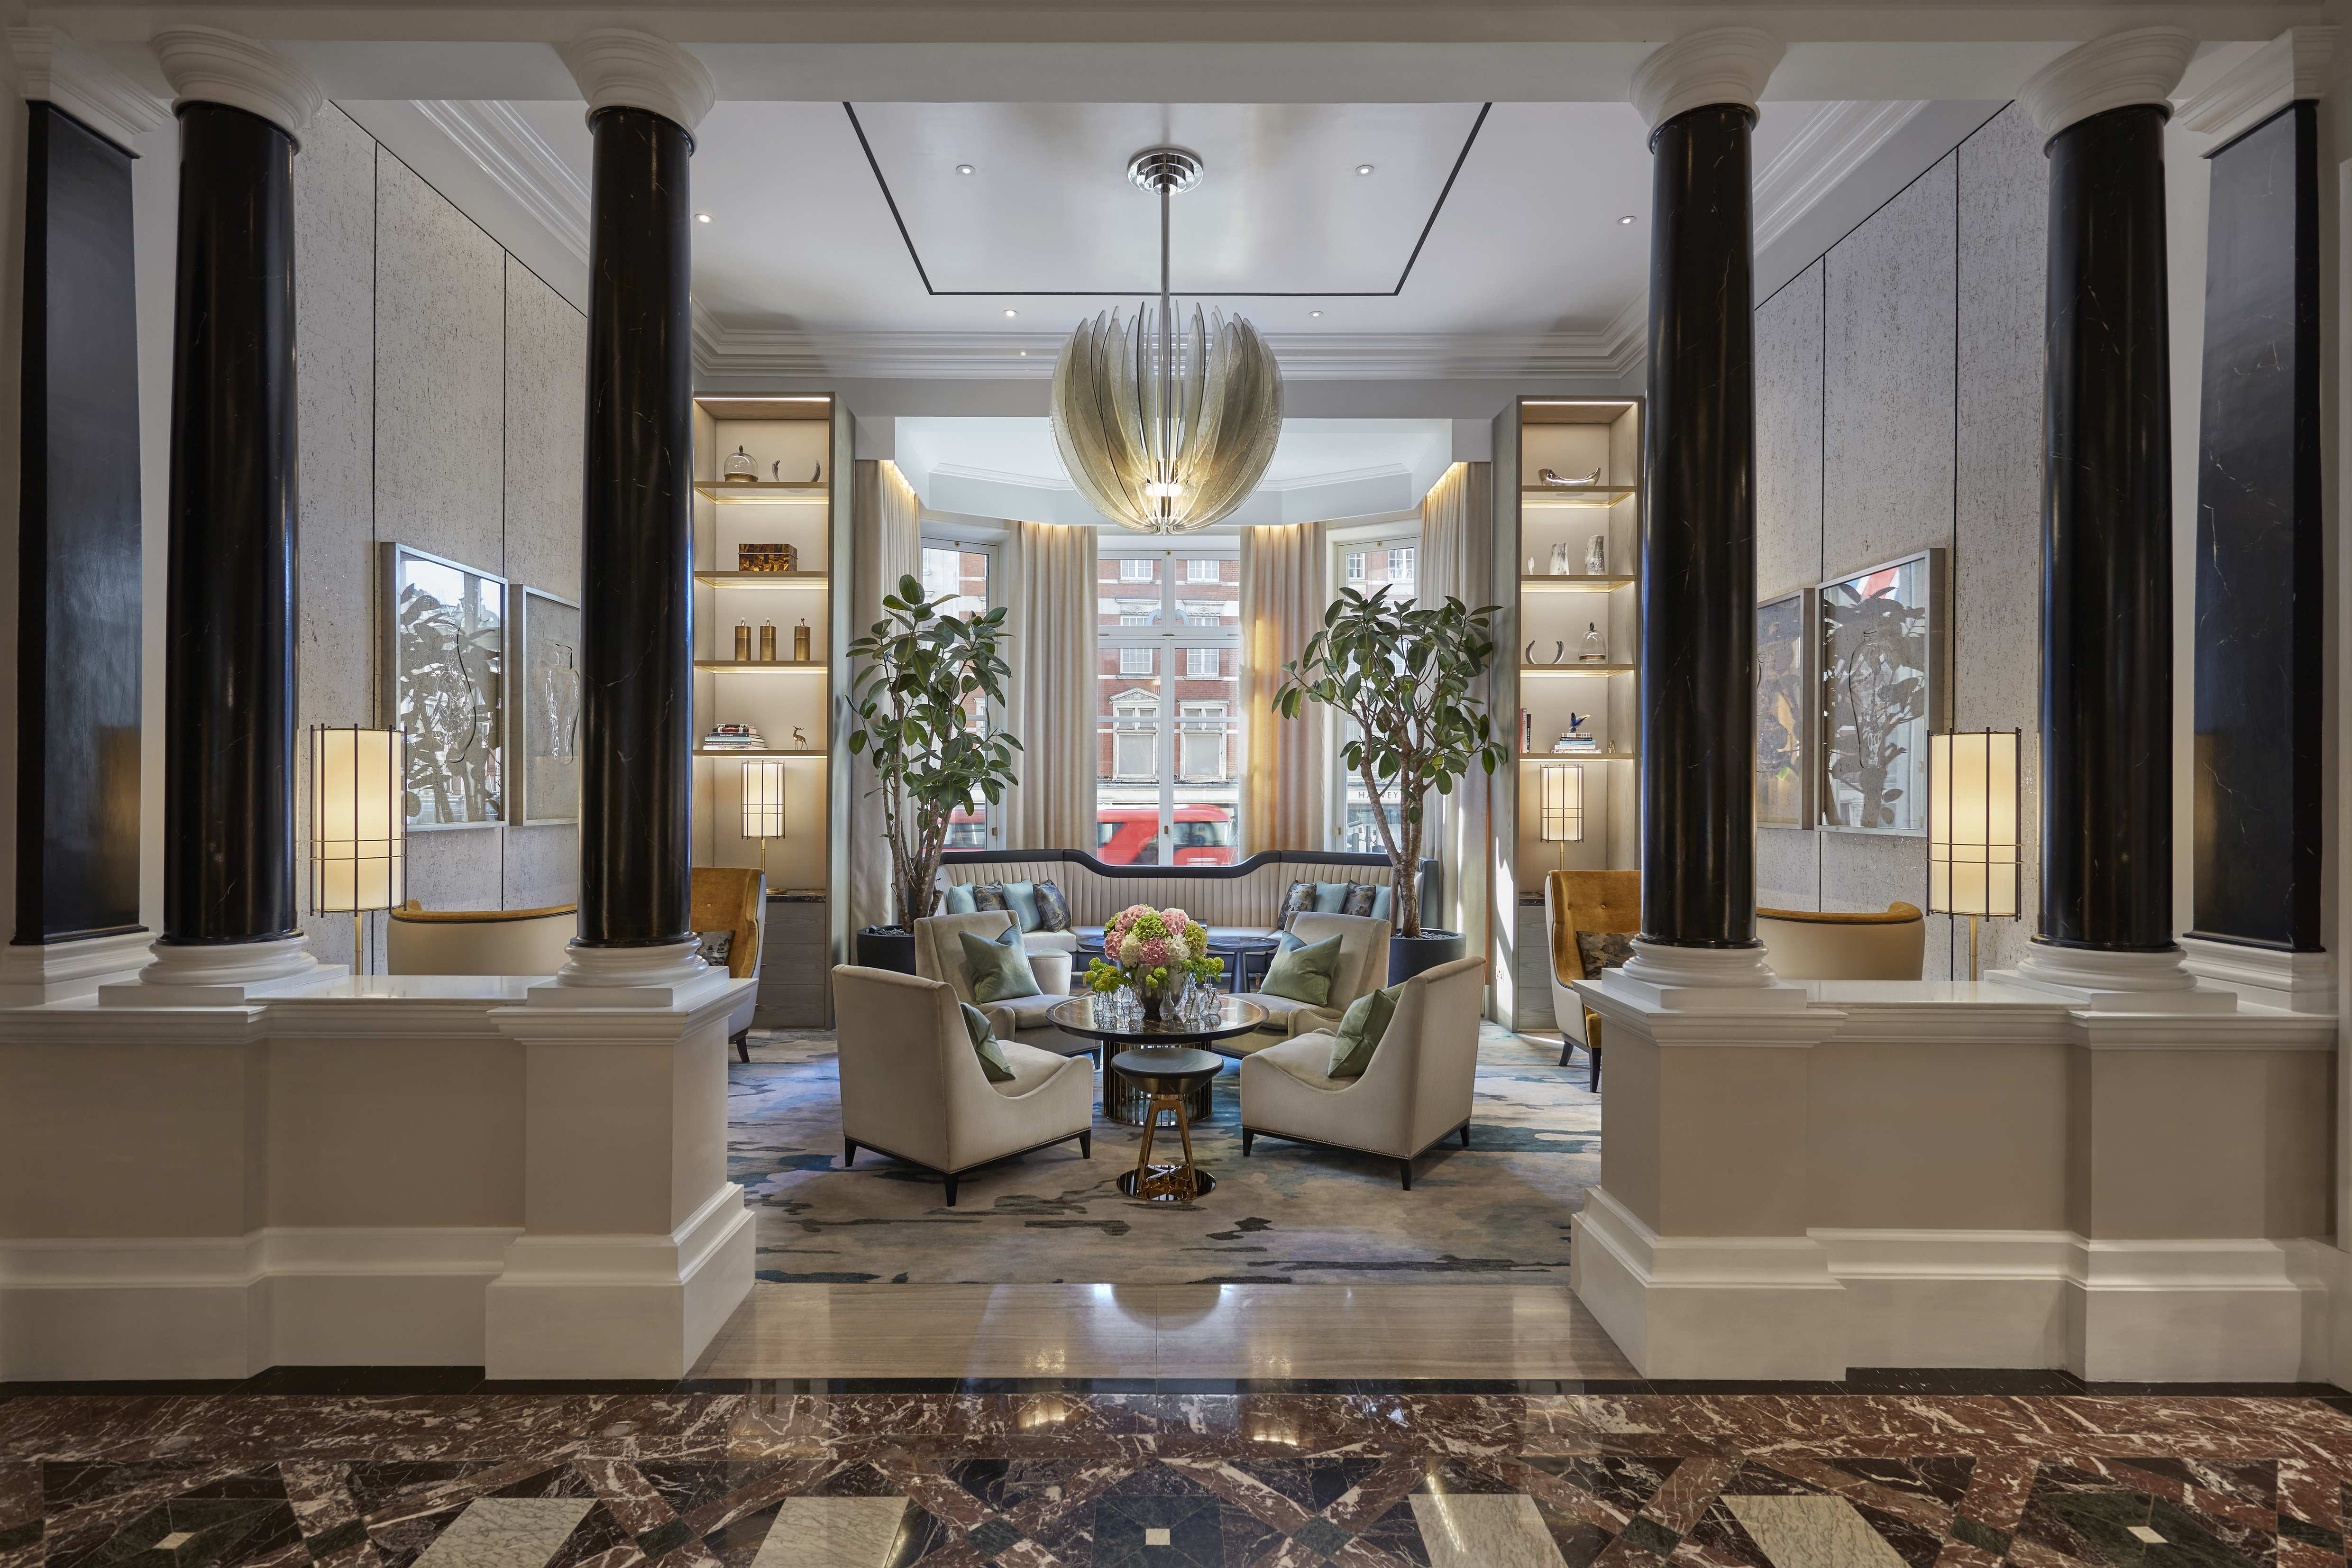 Mandarin Oriental, London unveils First Phase of Significant Renovation